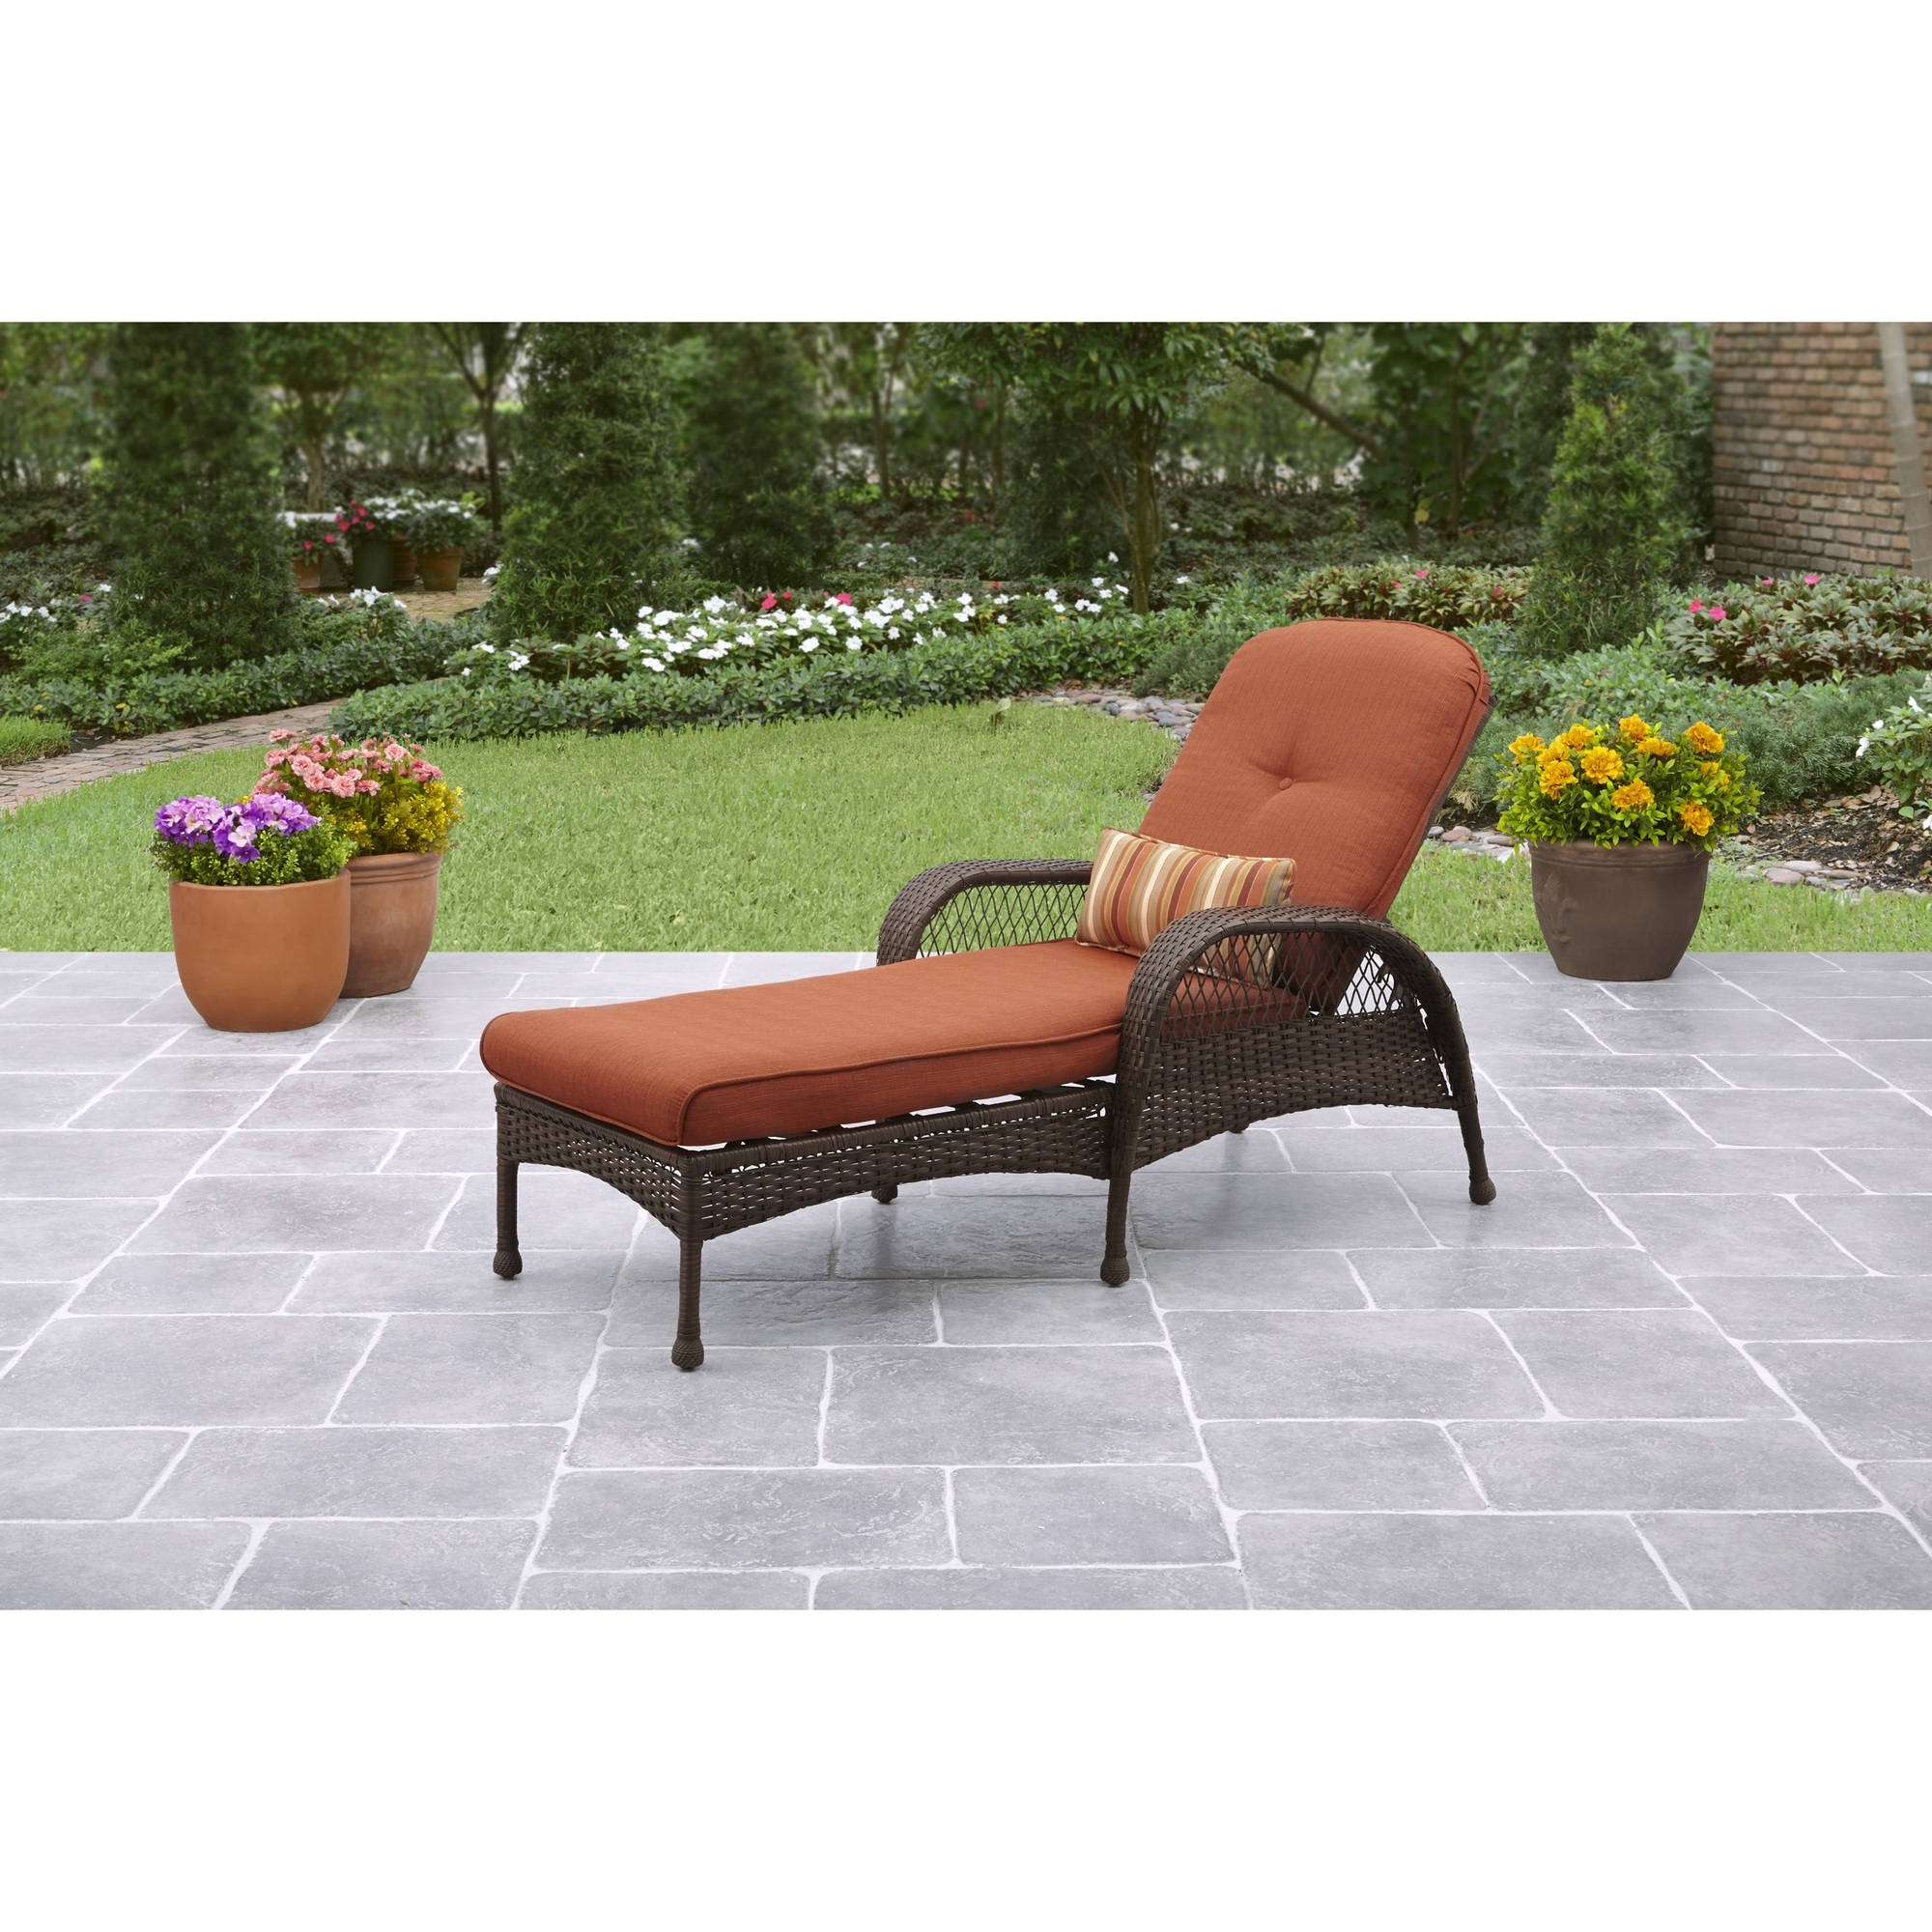 Well Known Macys Outdoor Chaise Lounge Chairs Throughout Outdoor : Outdoor Chaise Lounge Chair Pool Lounge Chairs Outdoor (View 14 of 15)